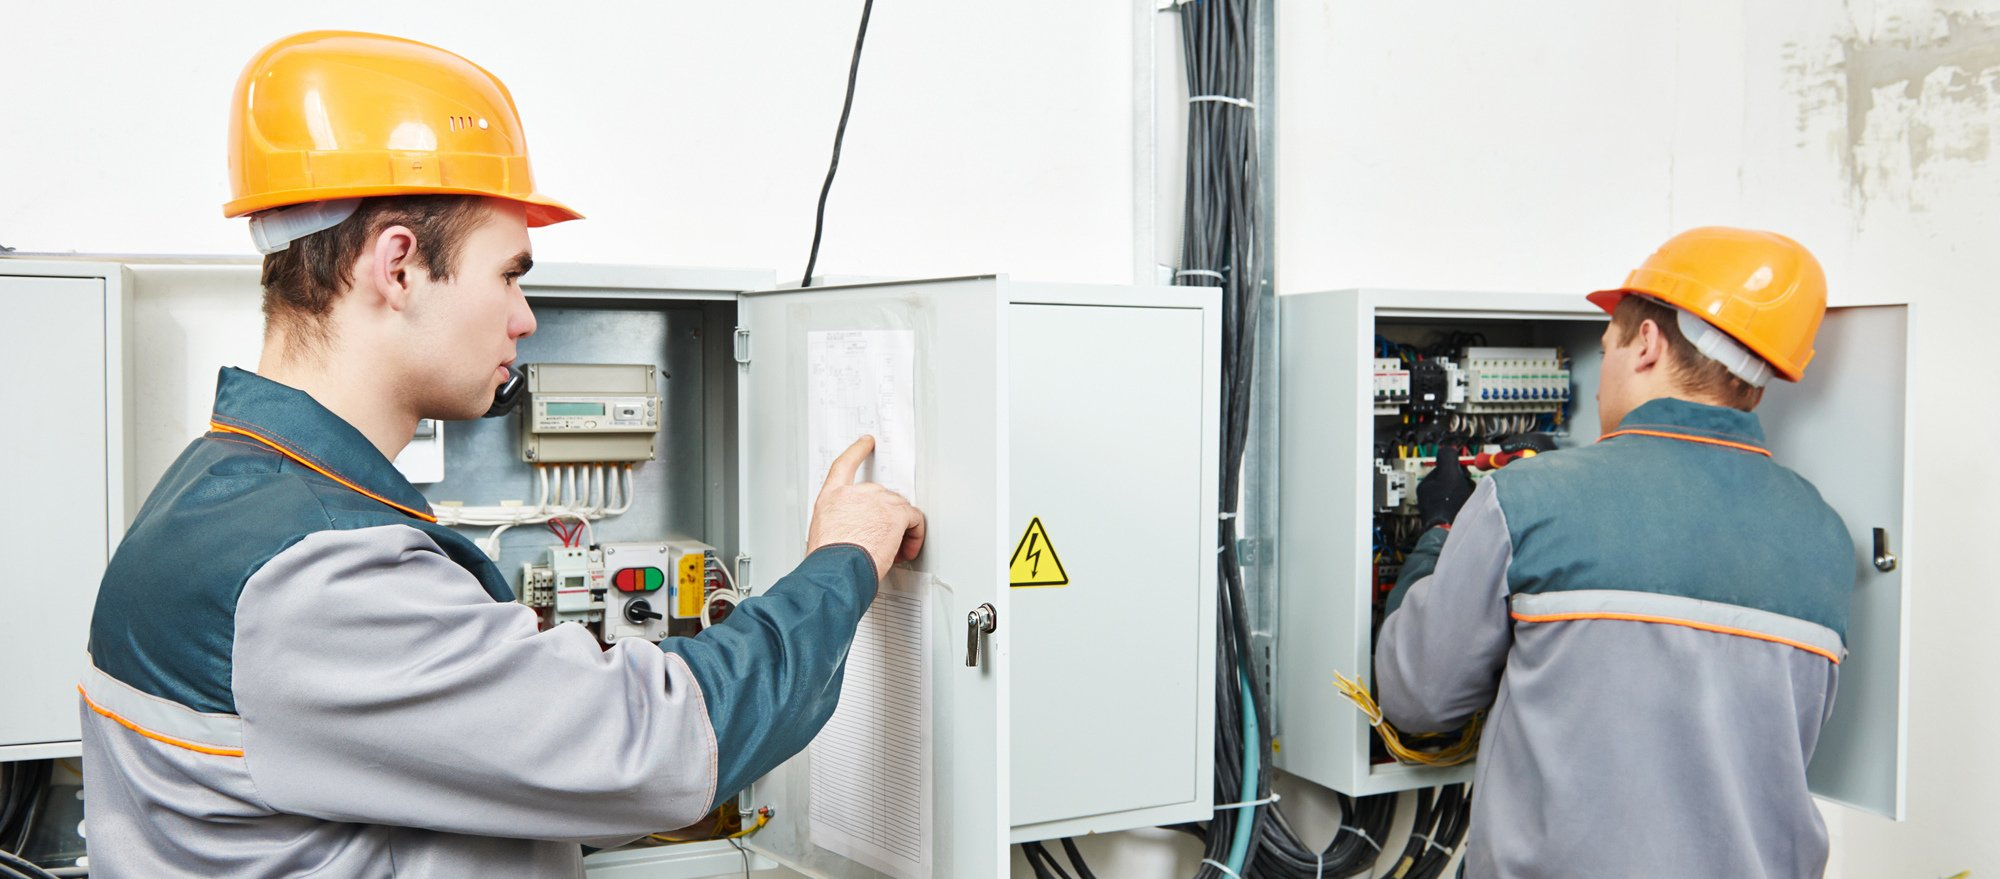 Trusted electricians provide safe and functional service to stay connected in Napier